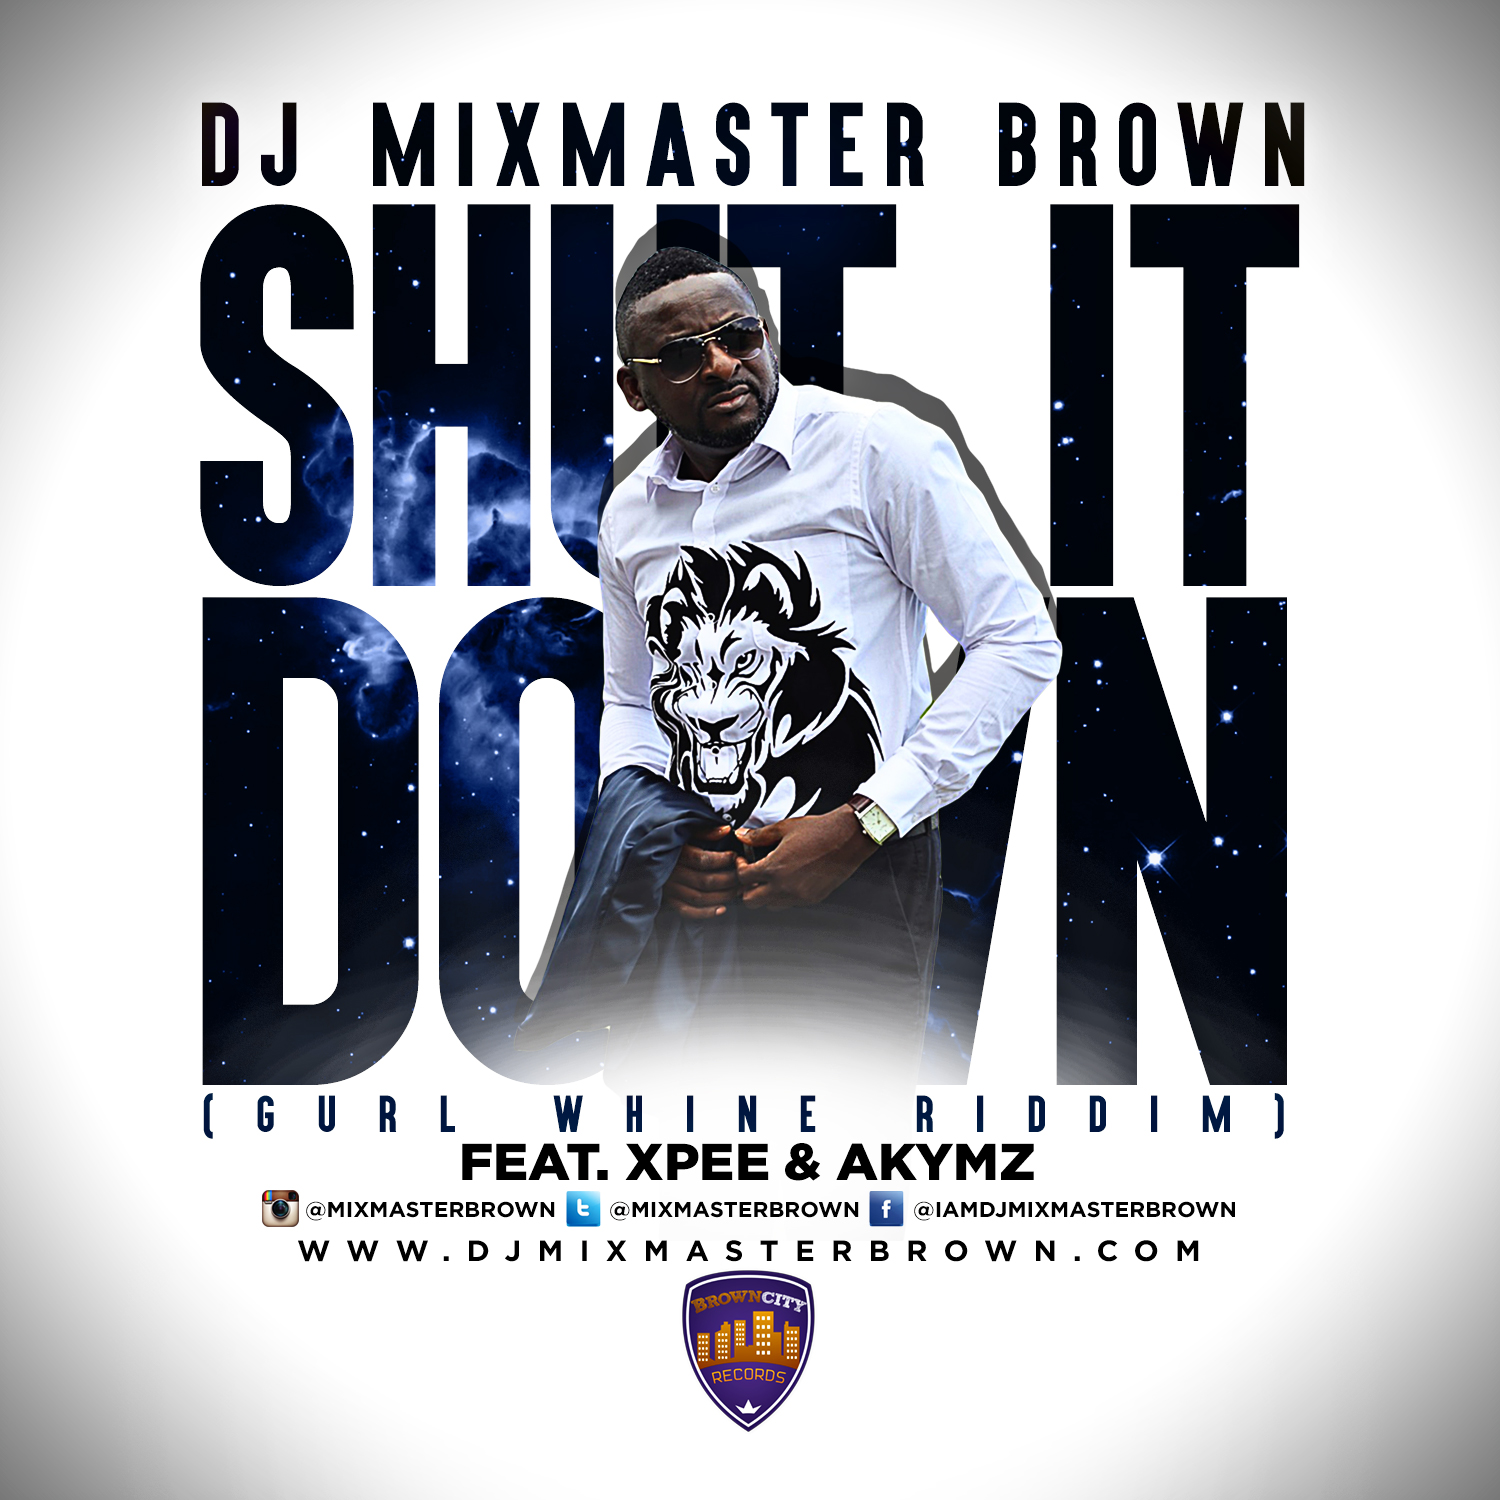 Dj Mixmaster Brown - Shut It Down Featuring Xpee & Akymz